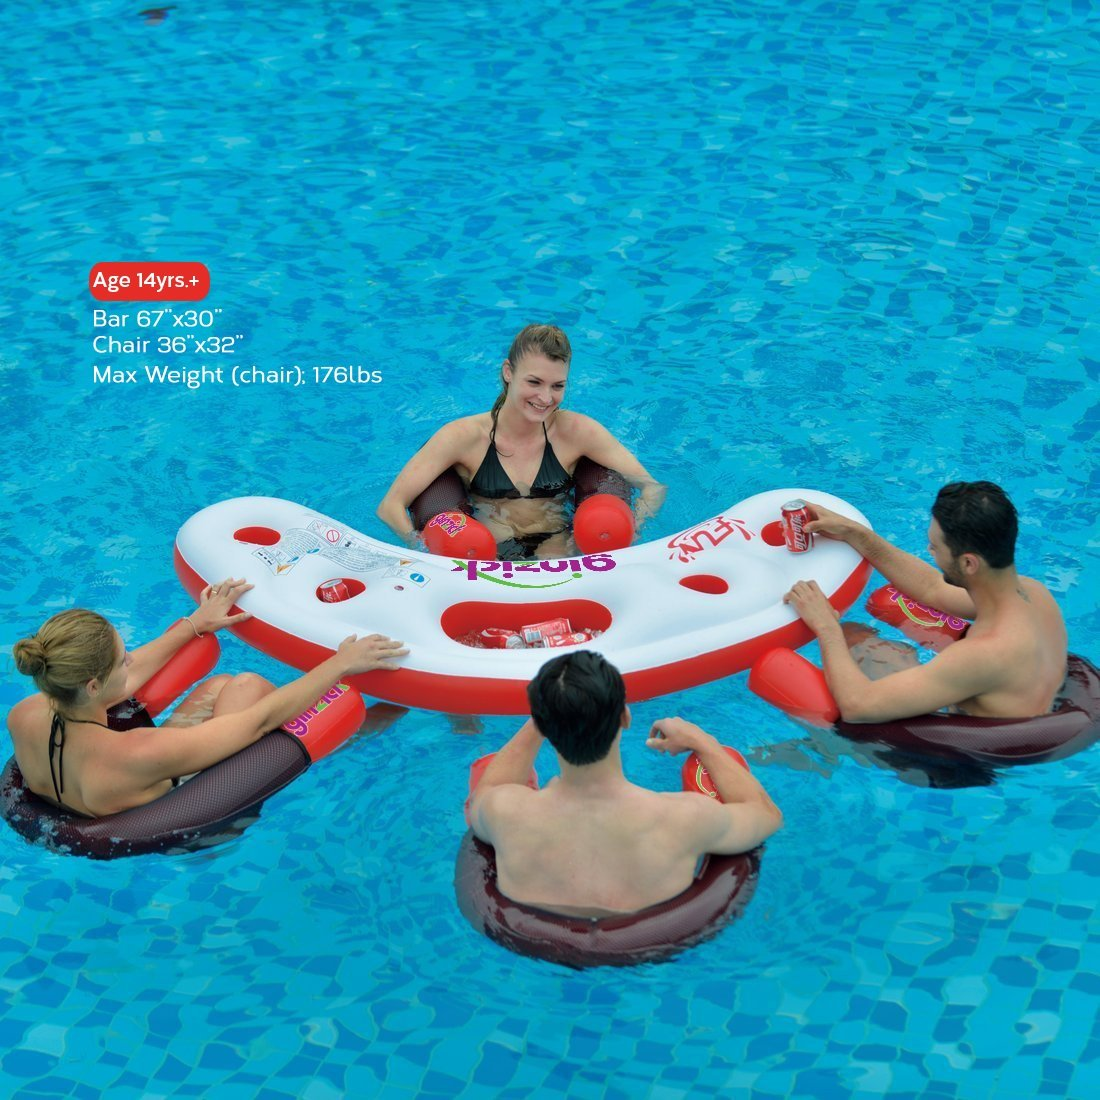 Amazon.com: Bar flotante para piscina, inflable de Ginzick ...